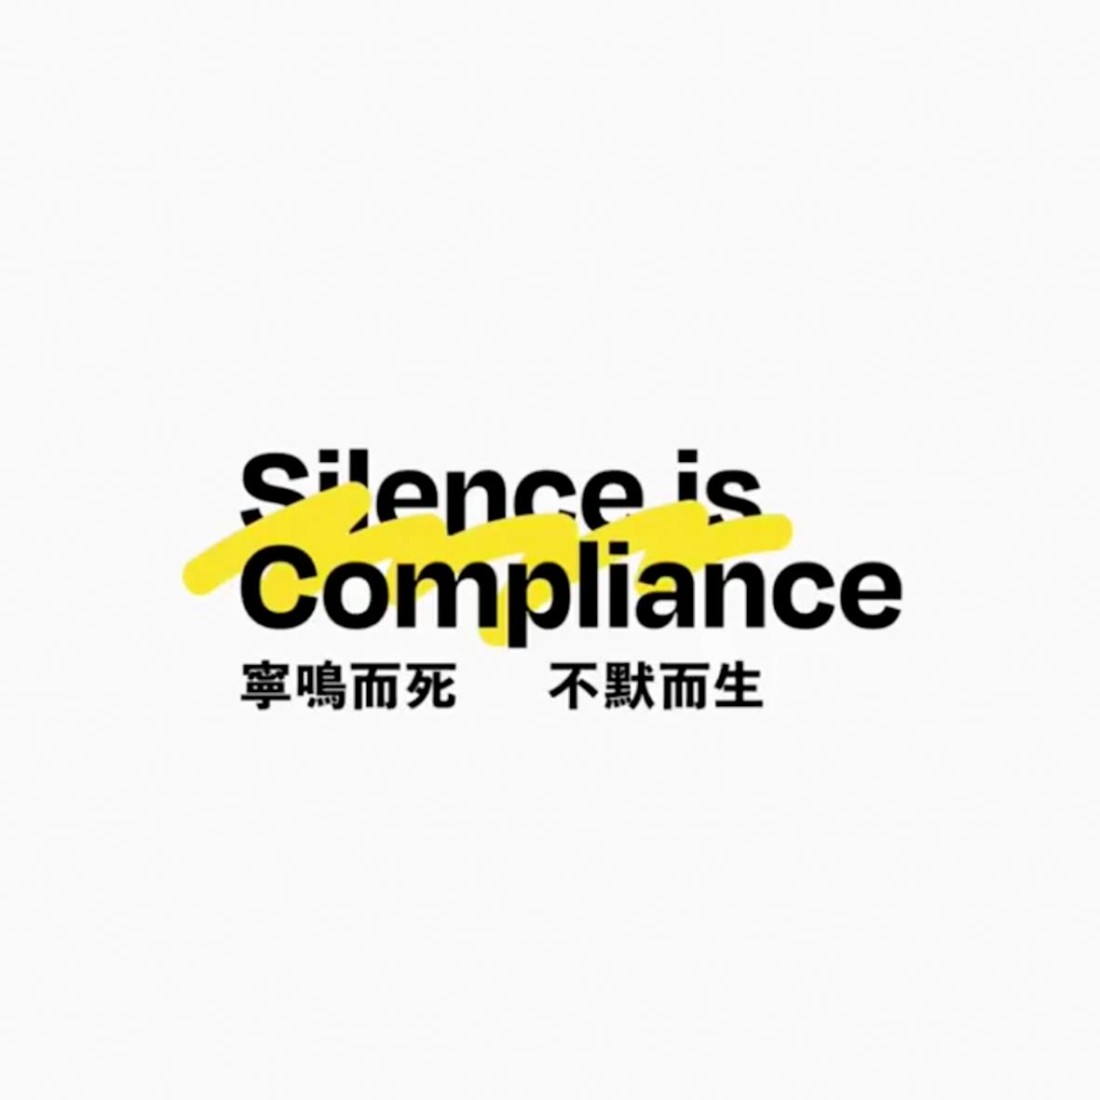 SIlcence-is-compilance-web